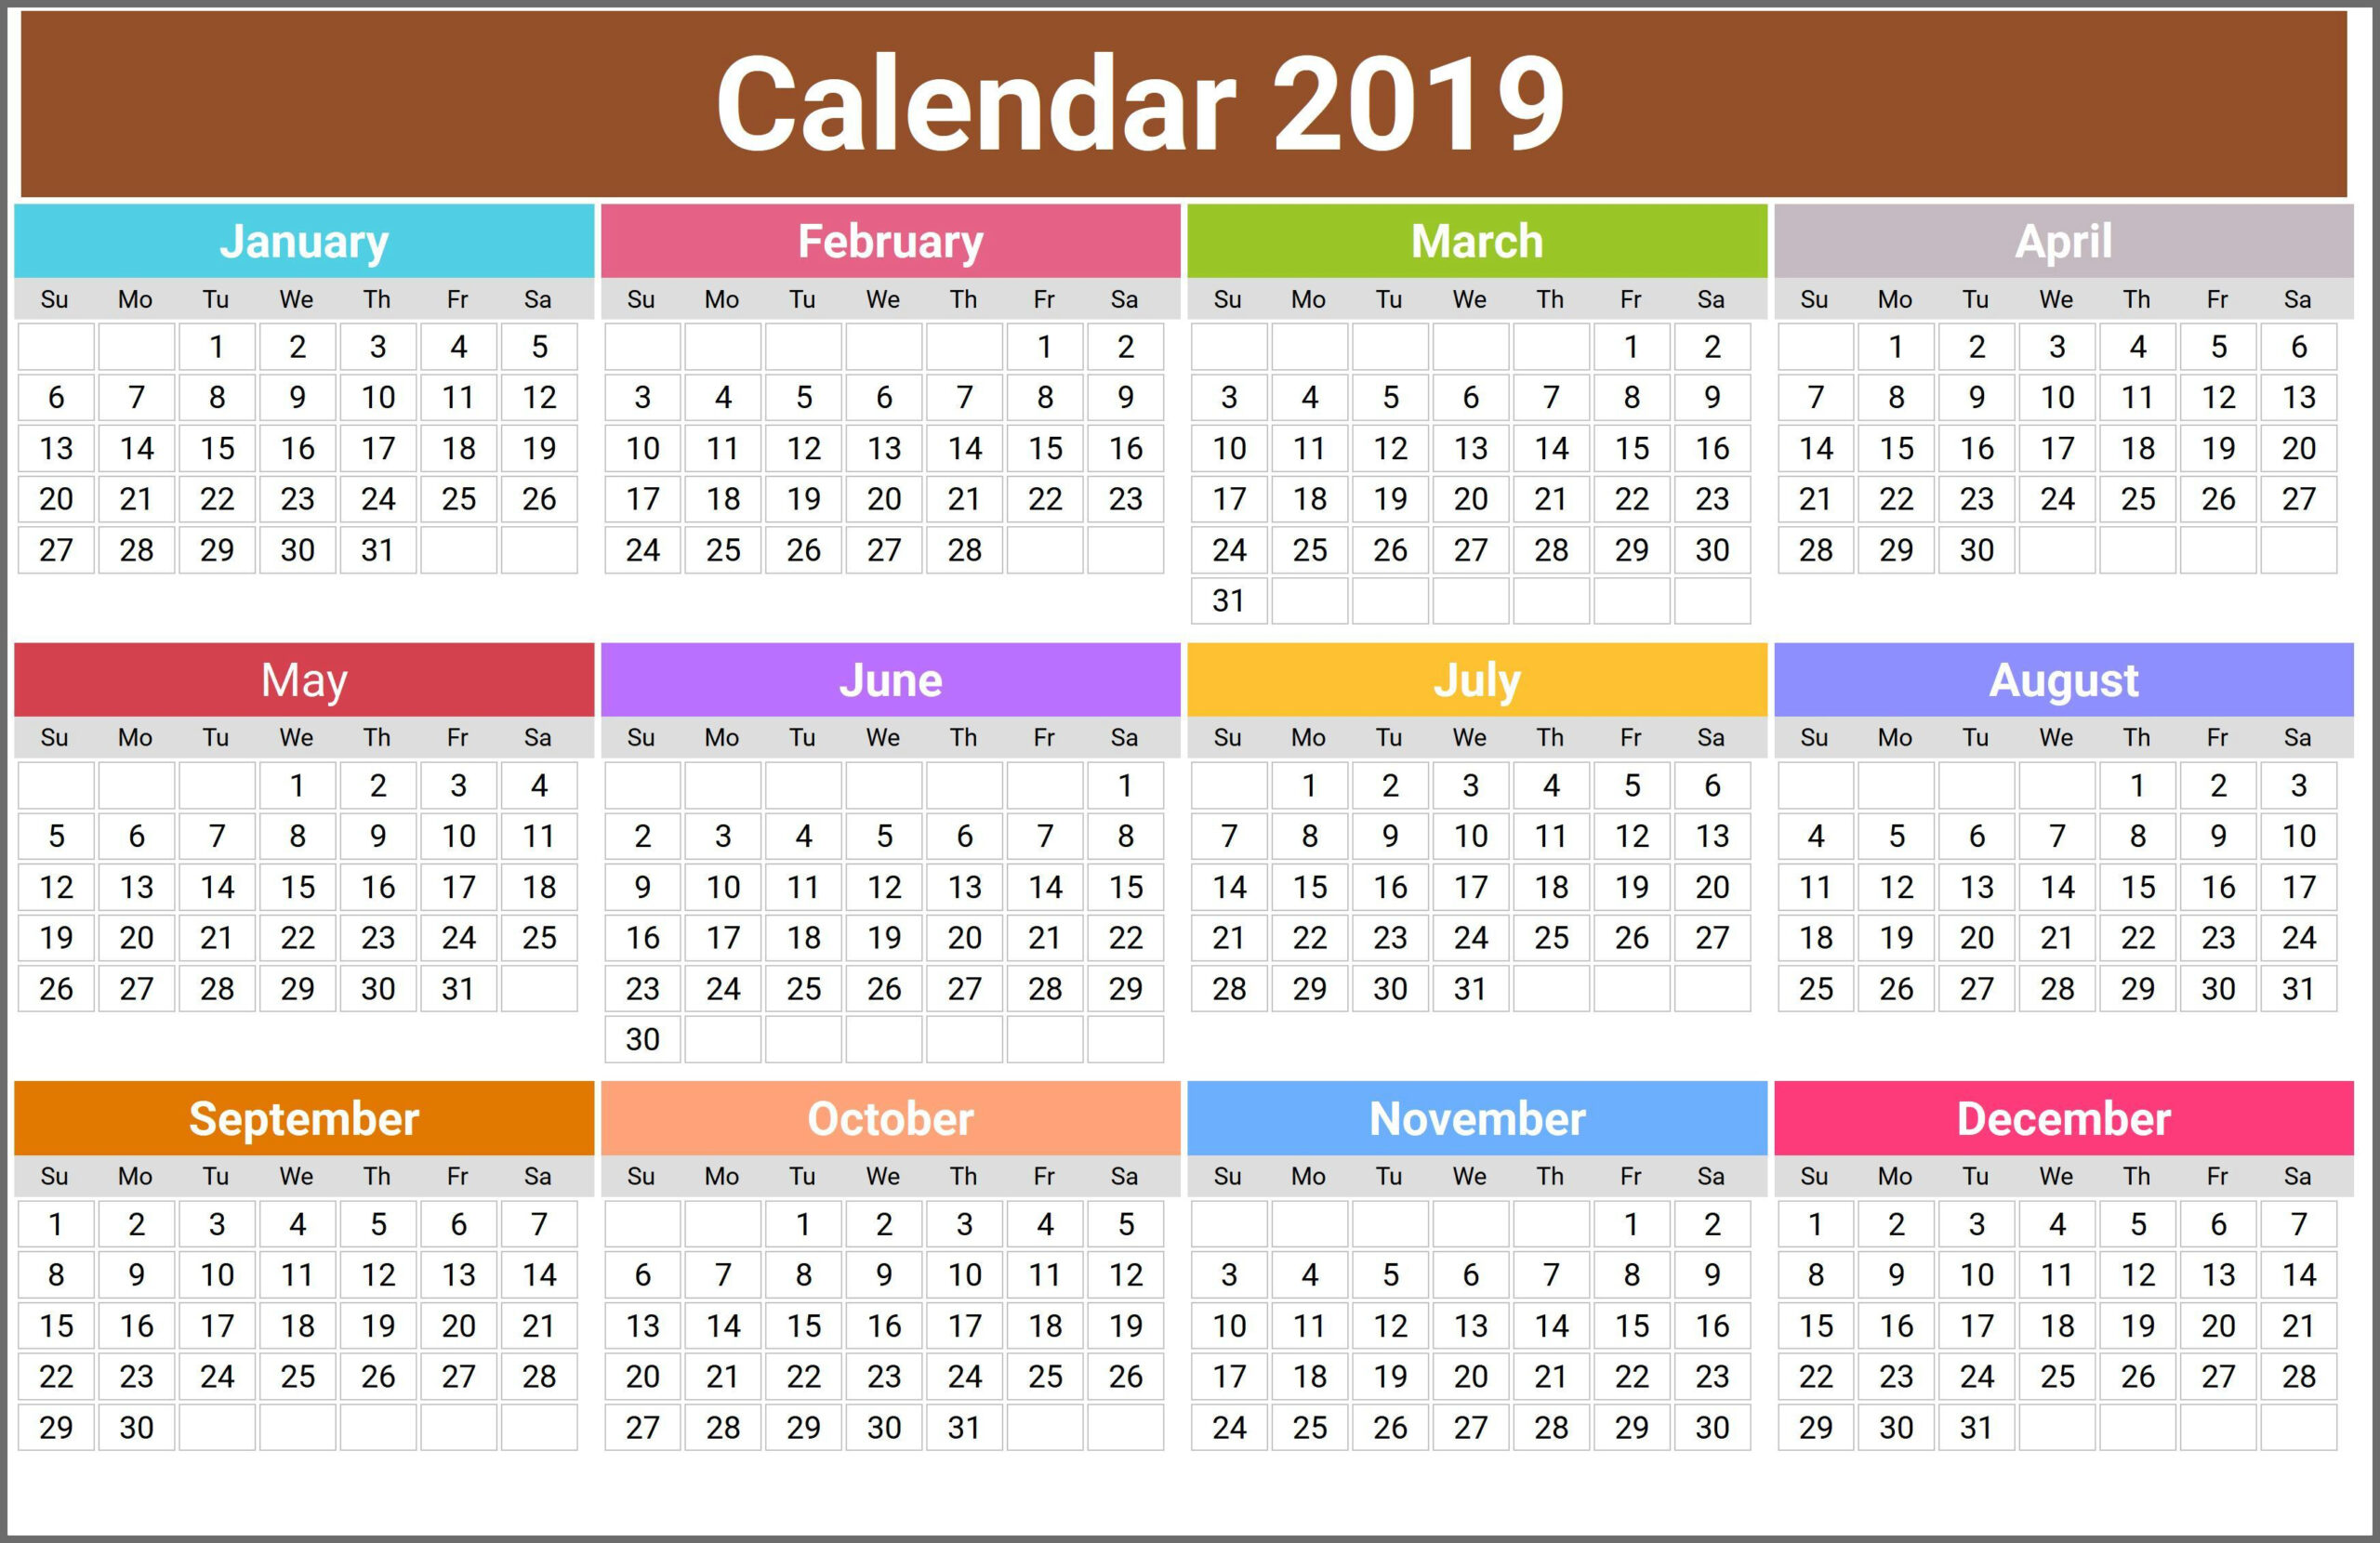 2019 Calendar Holidays Usa, India, Uk, Canada, Australia